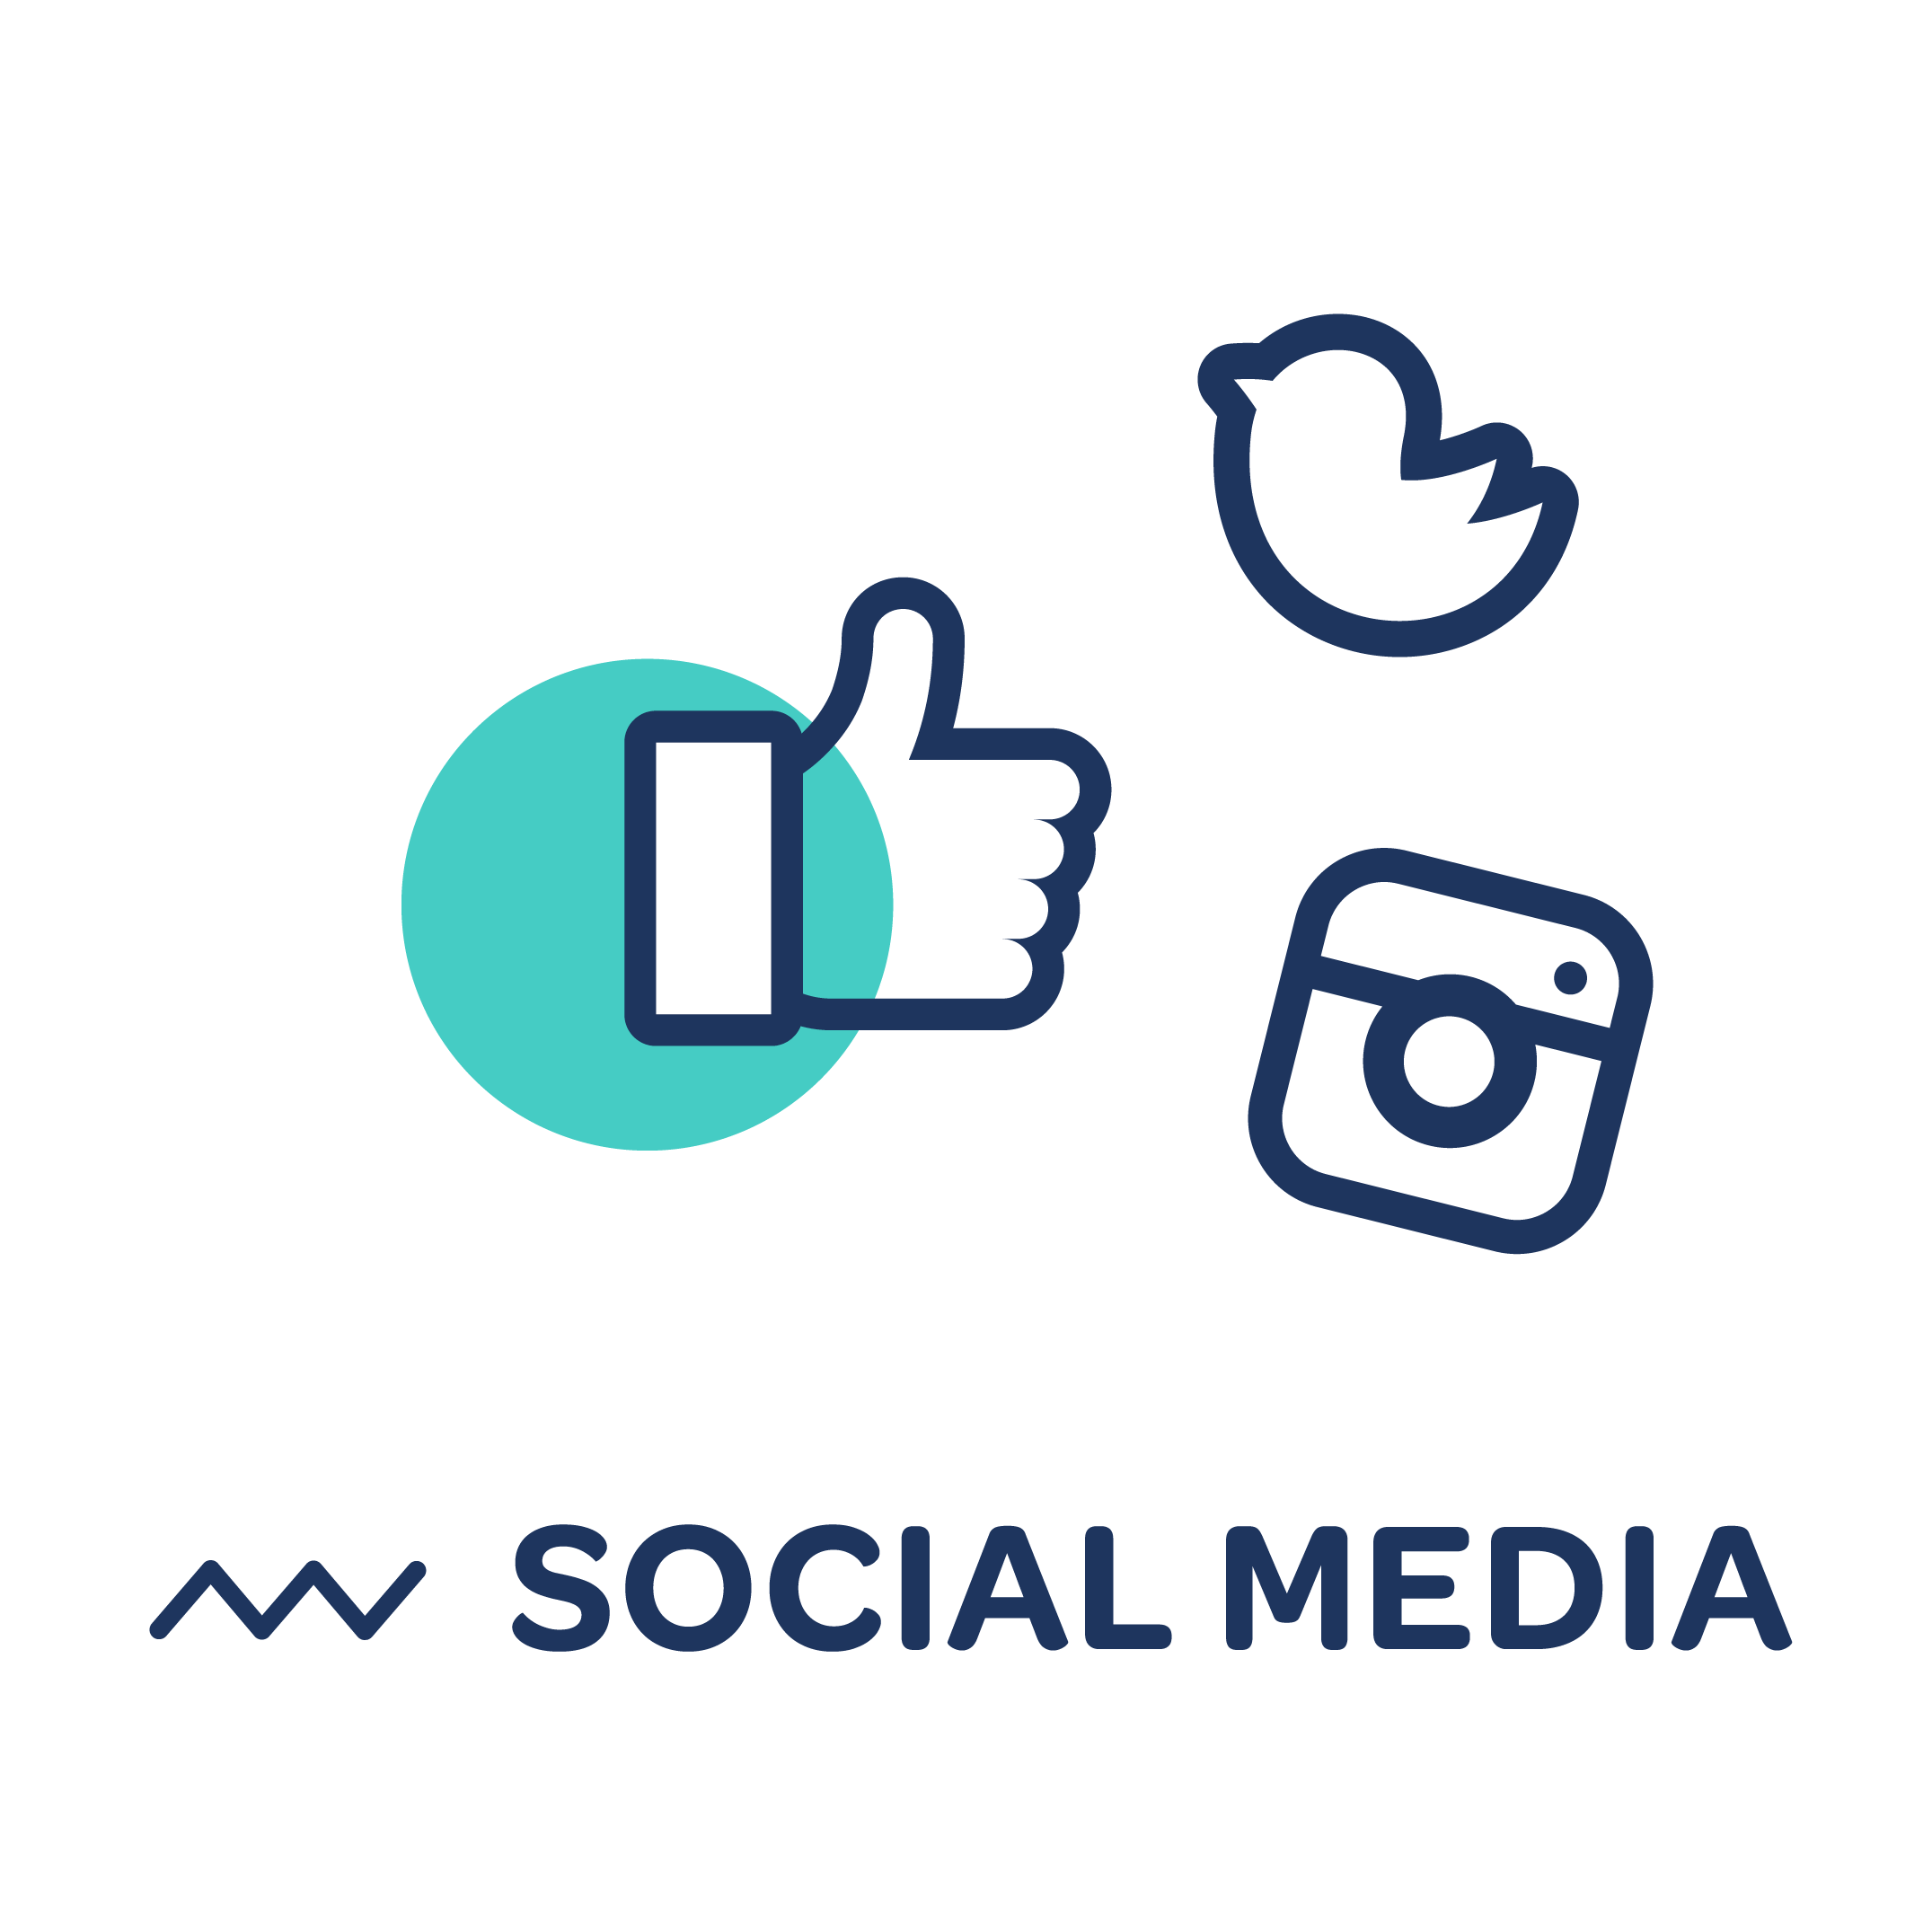 stock-photo-happy-young-woman-looking-up-of-hand-drawn-illustration-of-social-media-sign-and-symbol-doodles-193937699.jpg